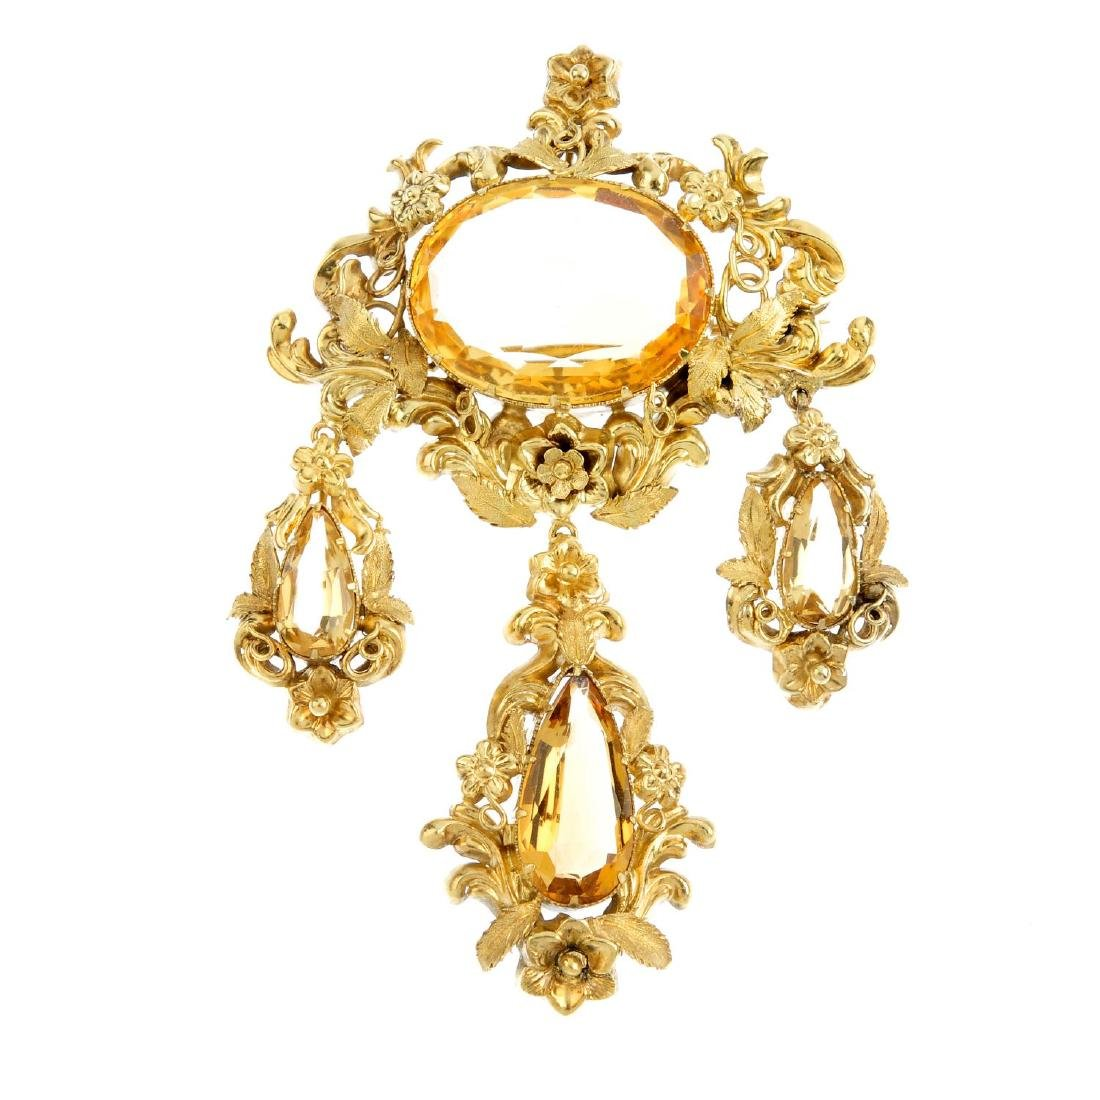 An early Victorian gold and citrine pendant. Designed